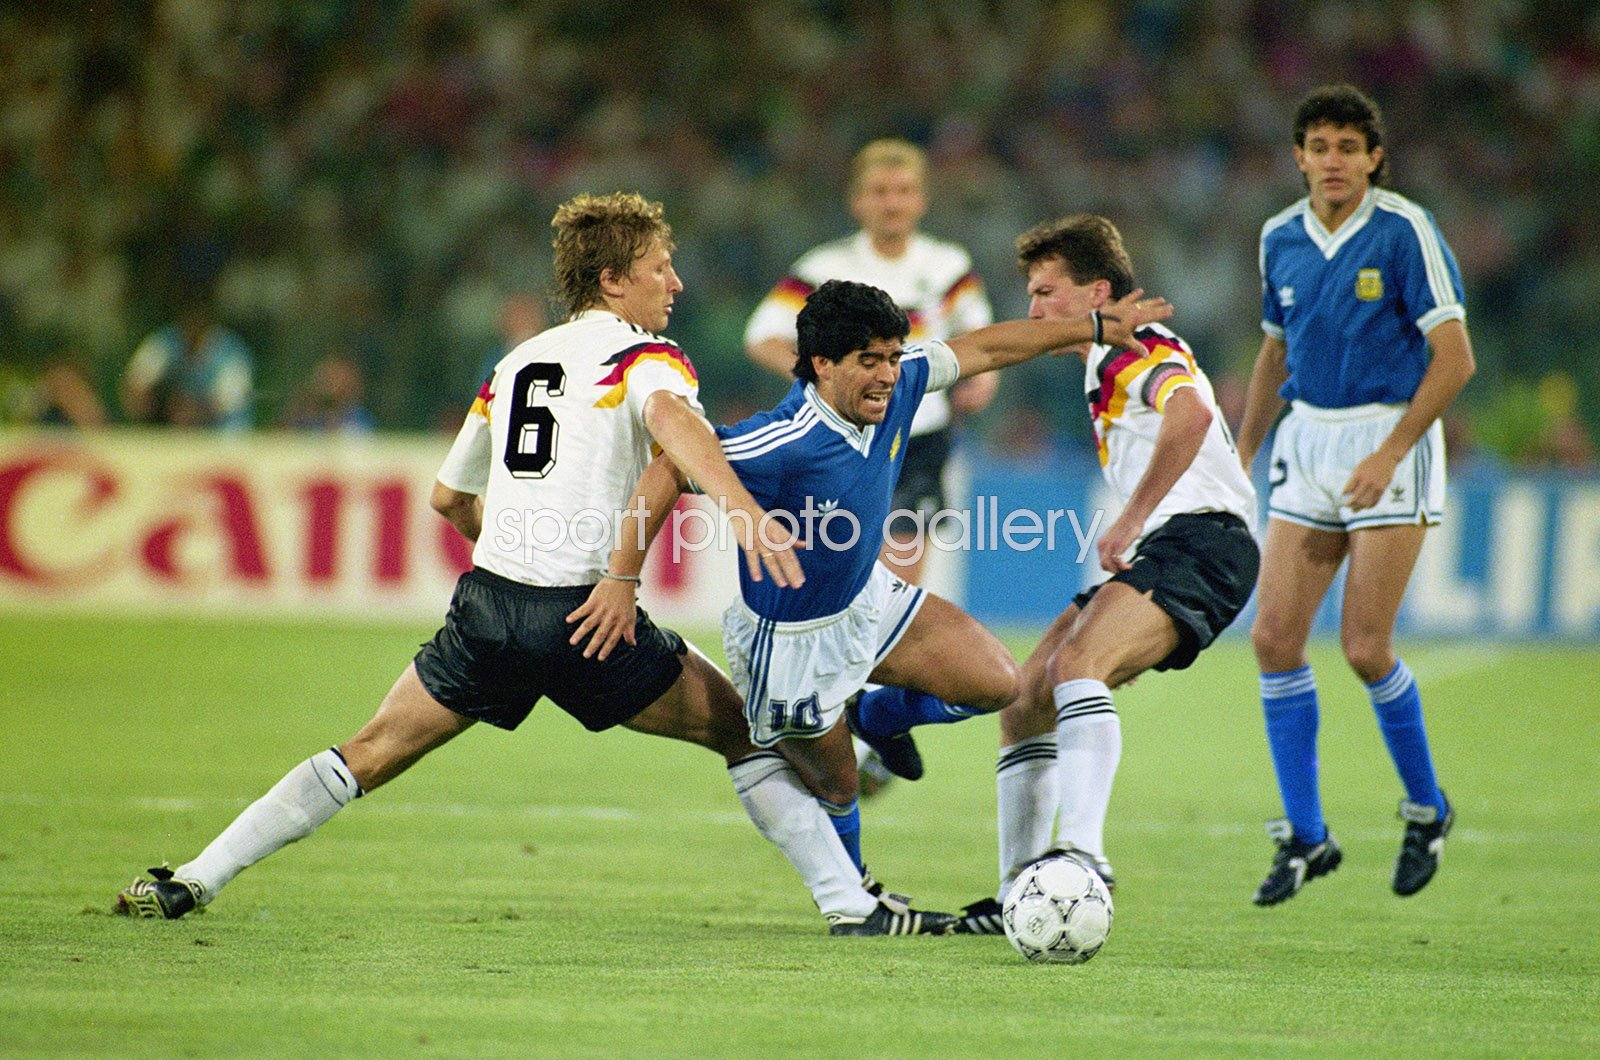 Diego Maradona Argentina v West Germany World Cup Final 1990